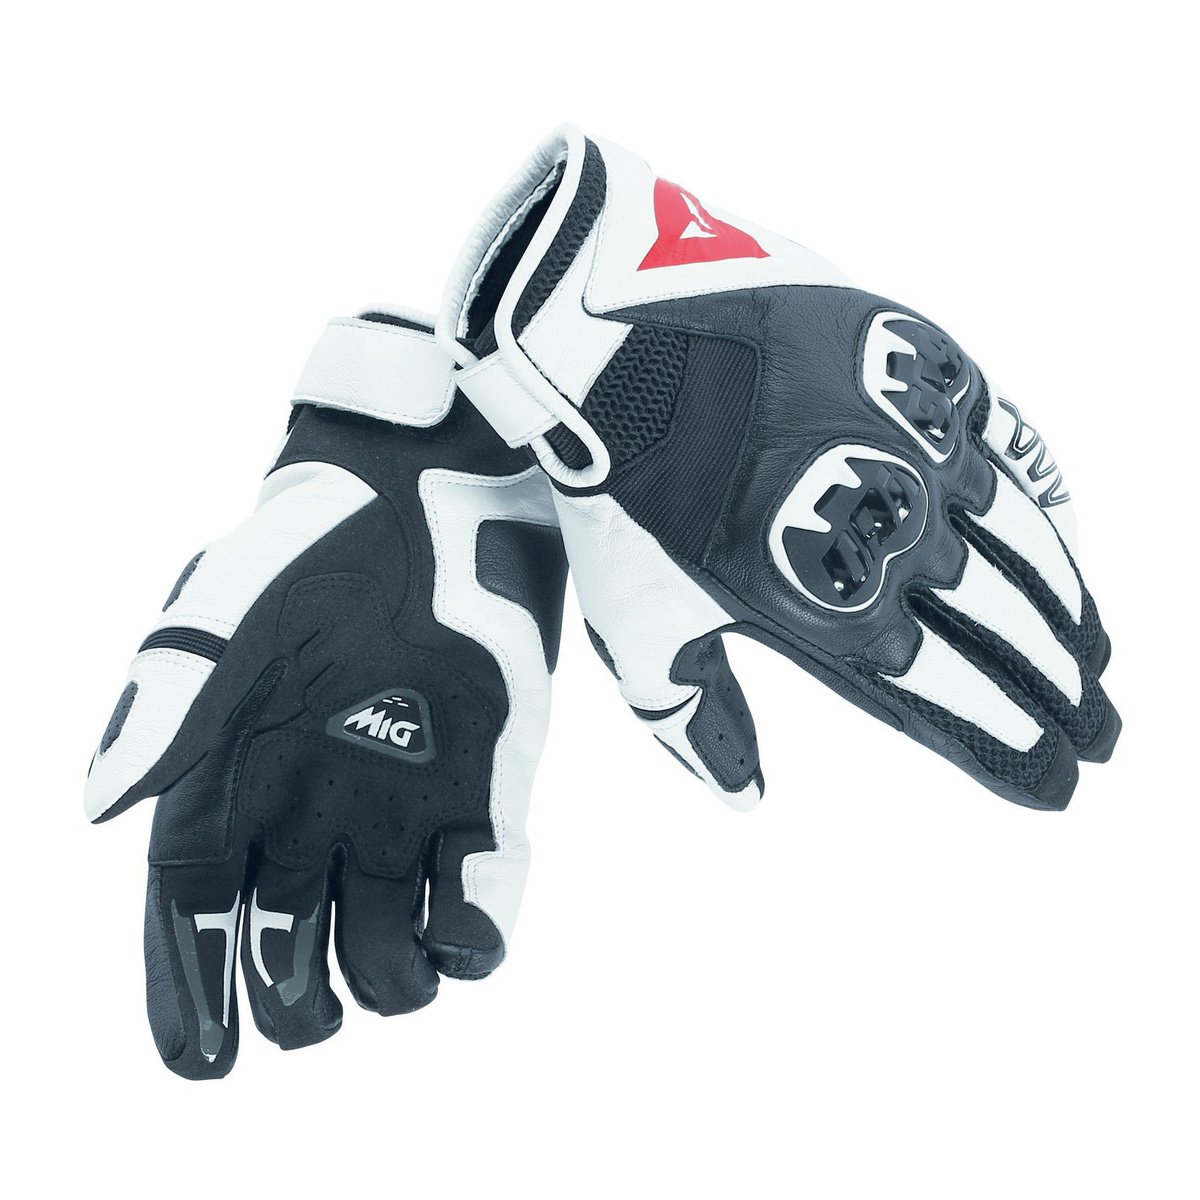 Guanti Dainese Mig C2